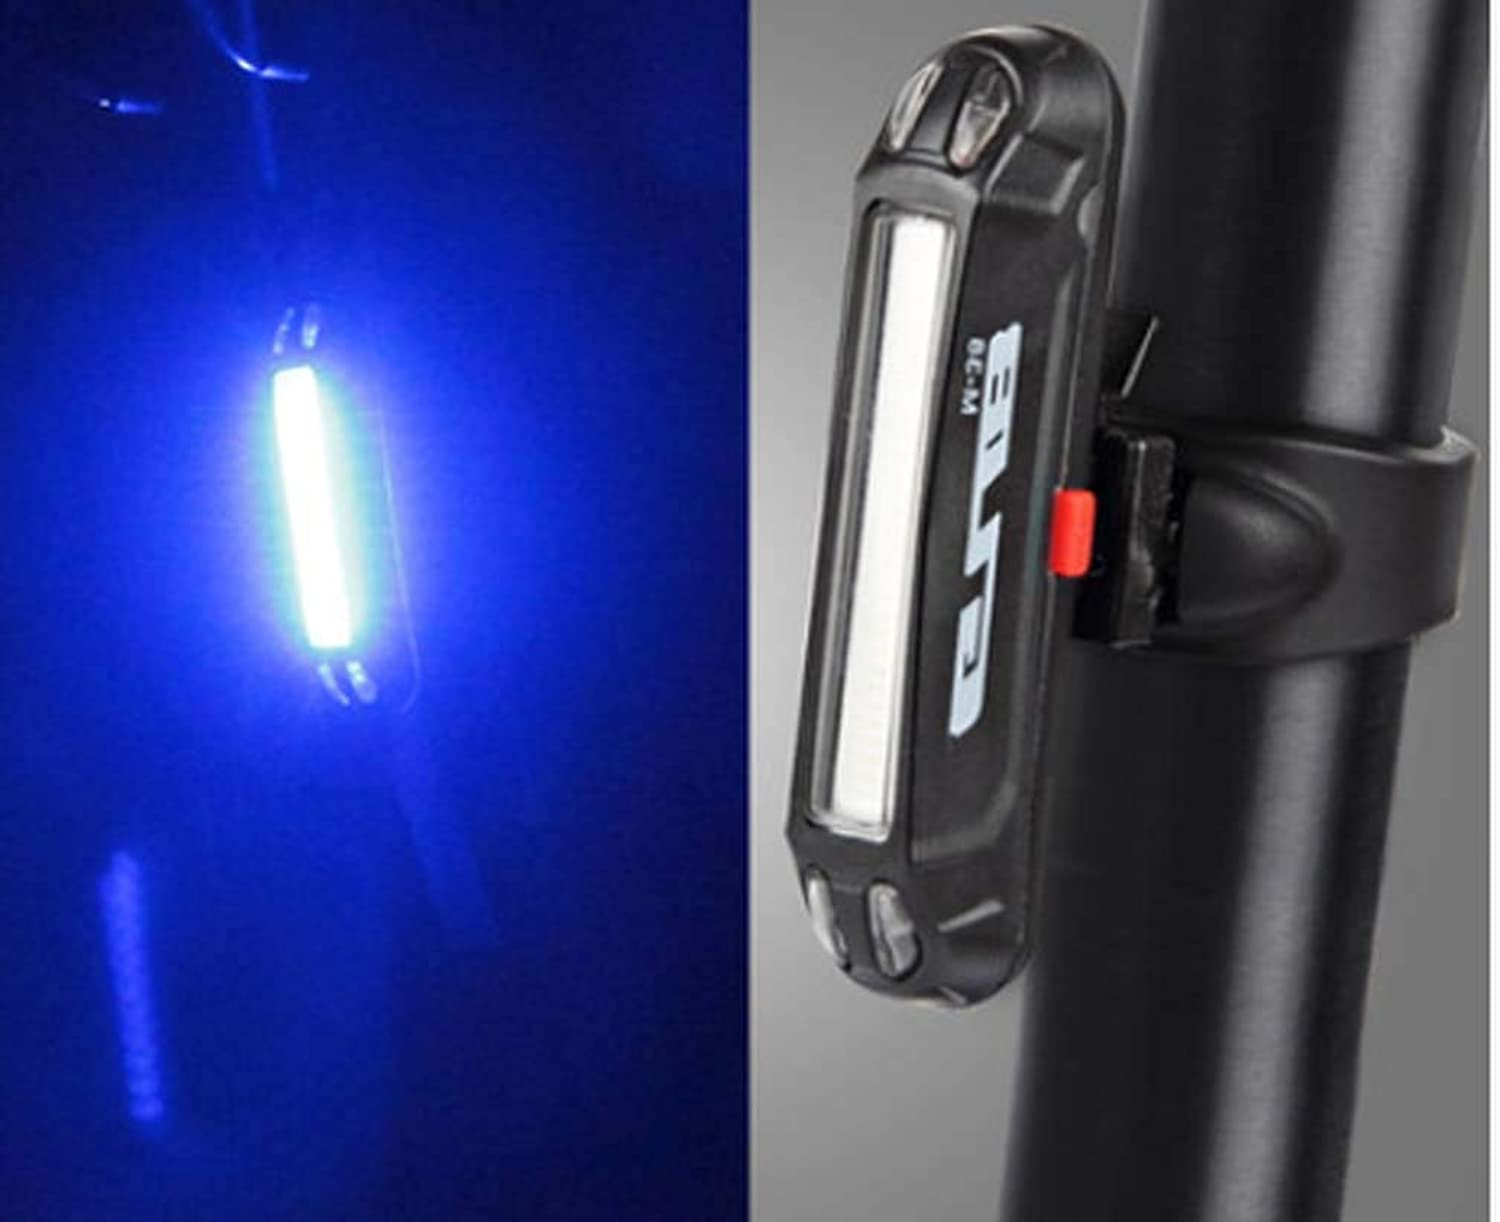 2019 New Model Bike Bicycle Light LED Taillight Rear Tail Safety Warning Cycling Portable seatpost Light USB Style Rechargeable